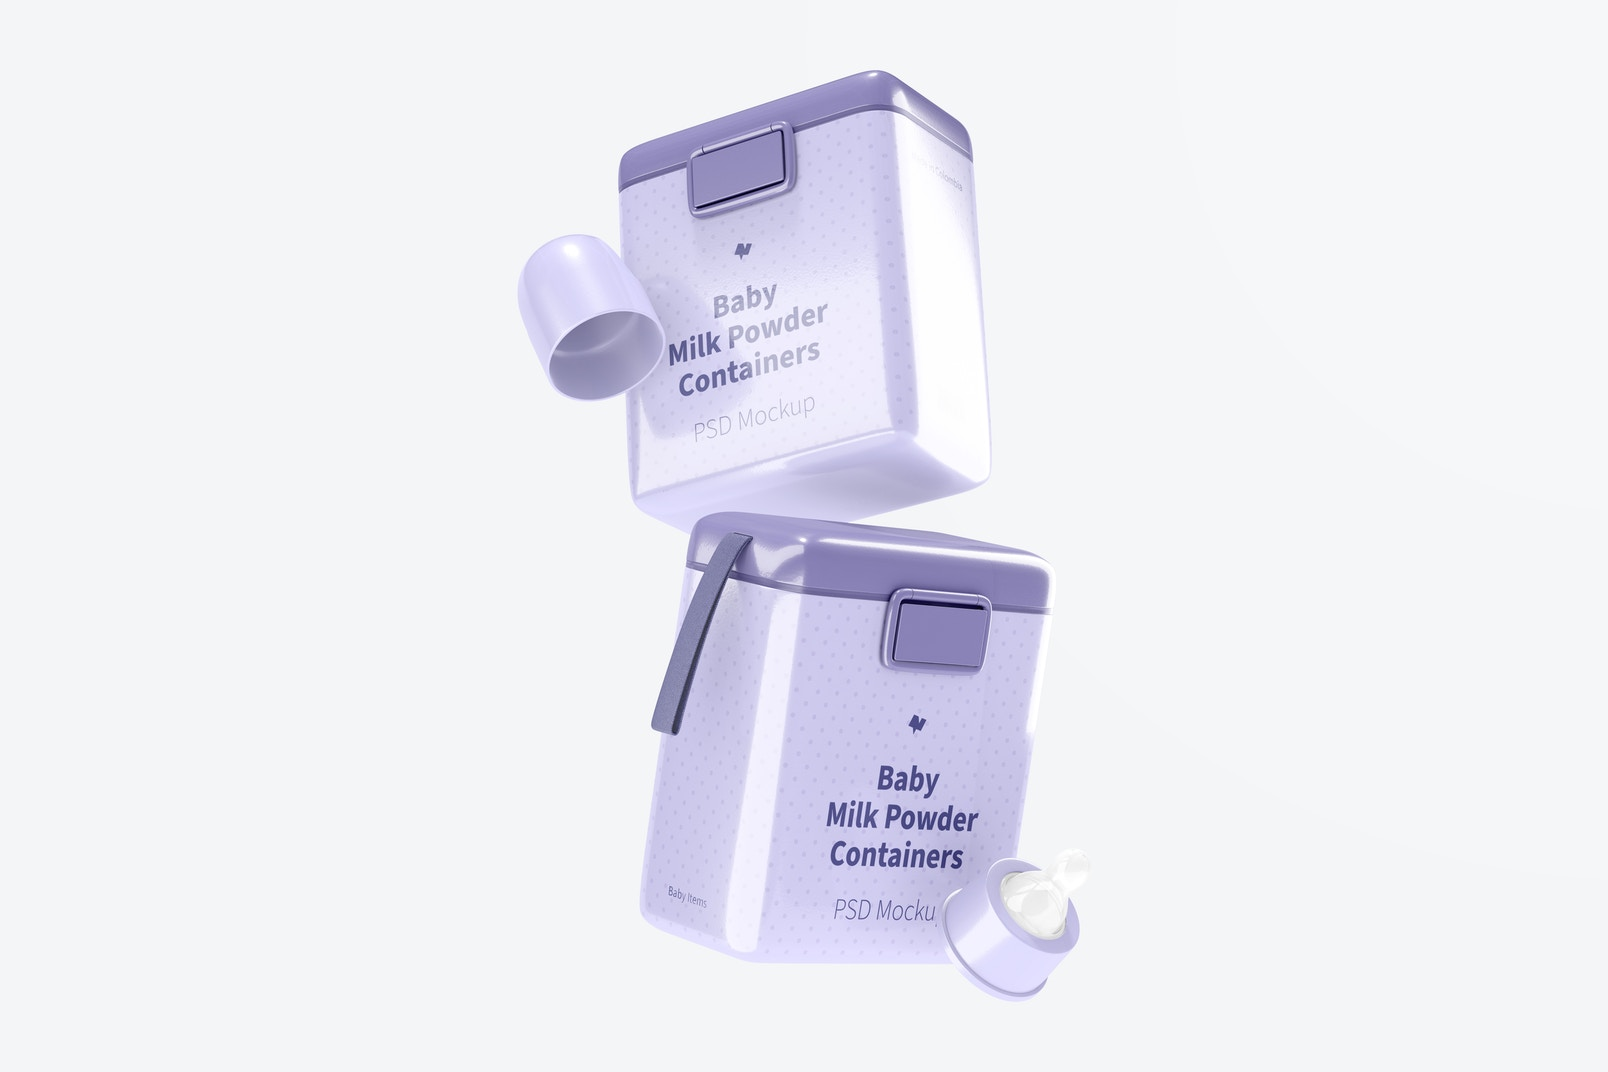 Large Baby Milk Powder Containers Mockup, Falling